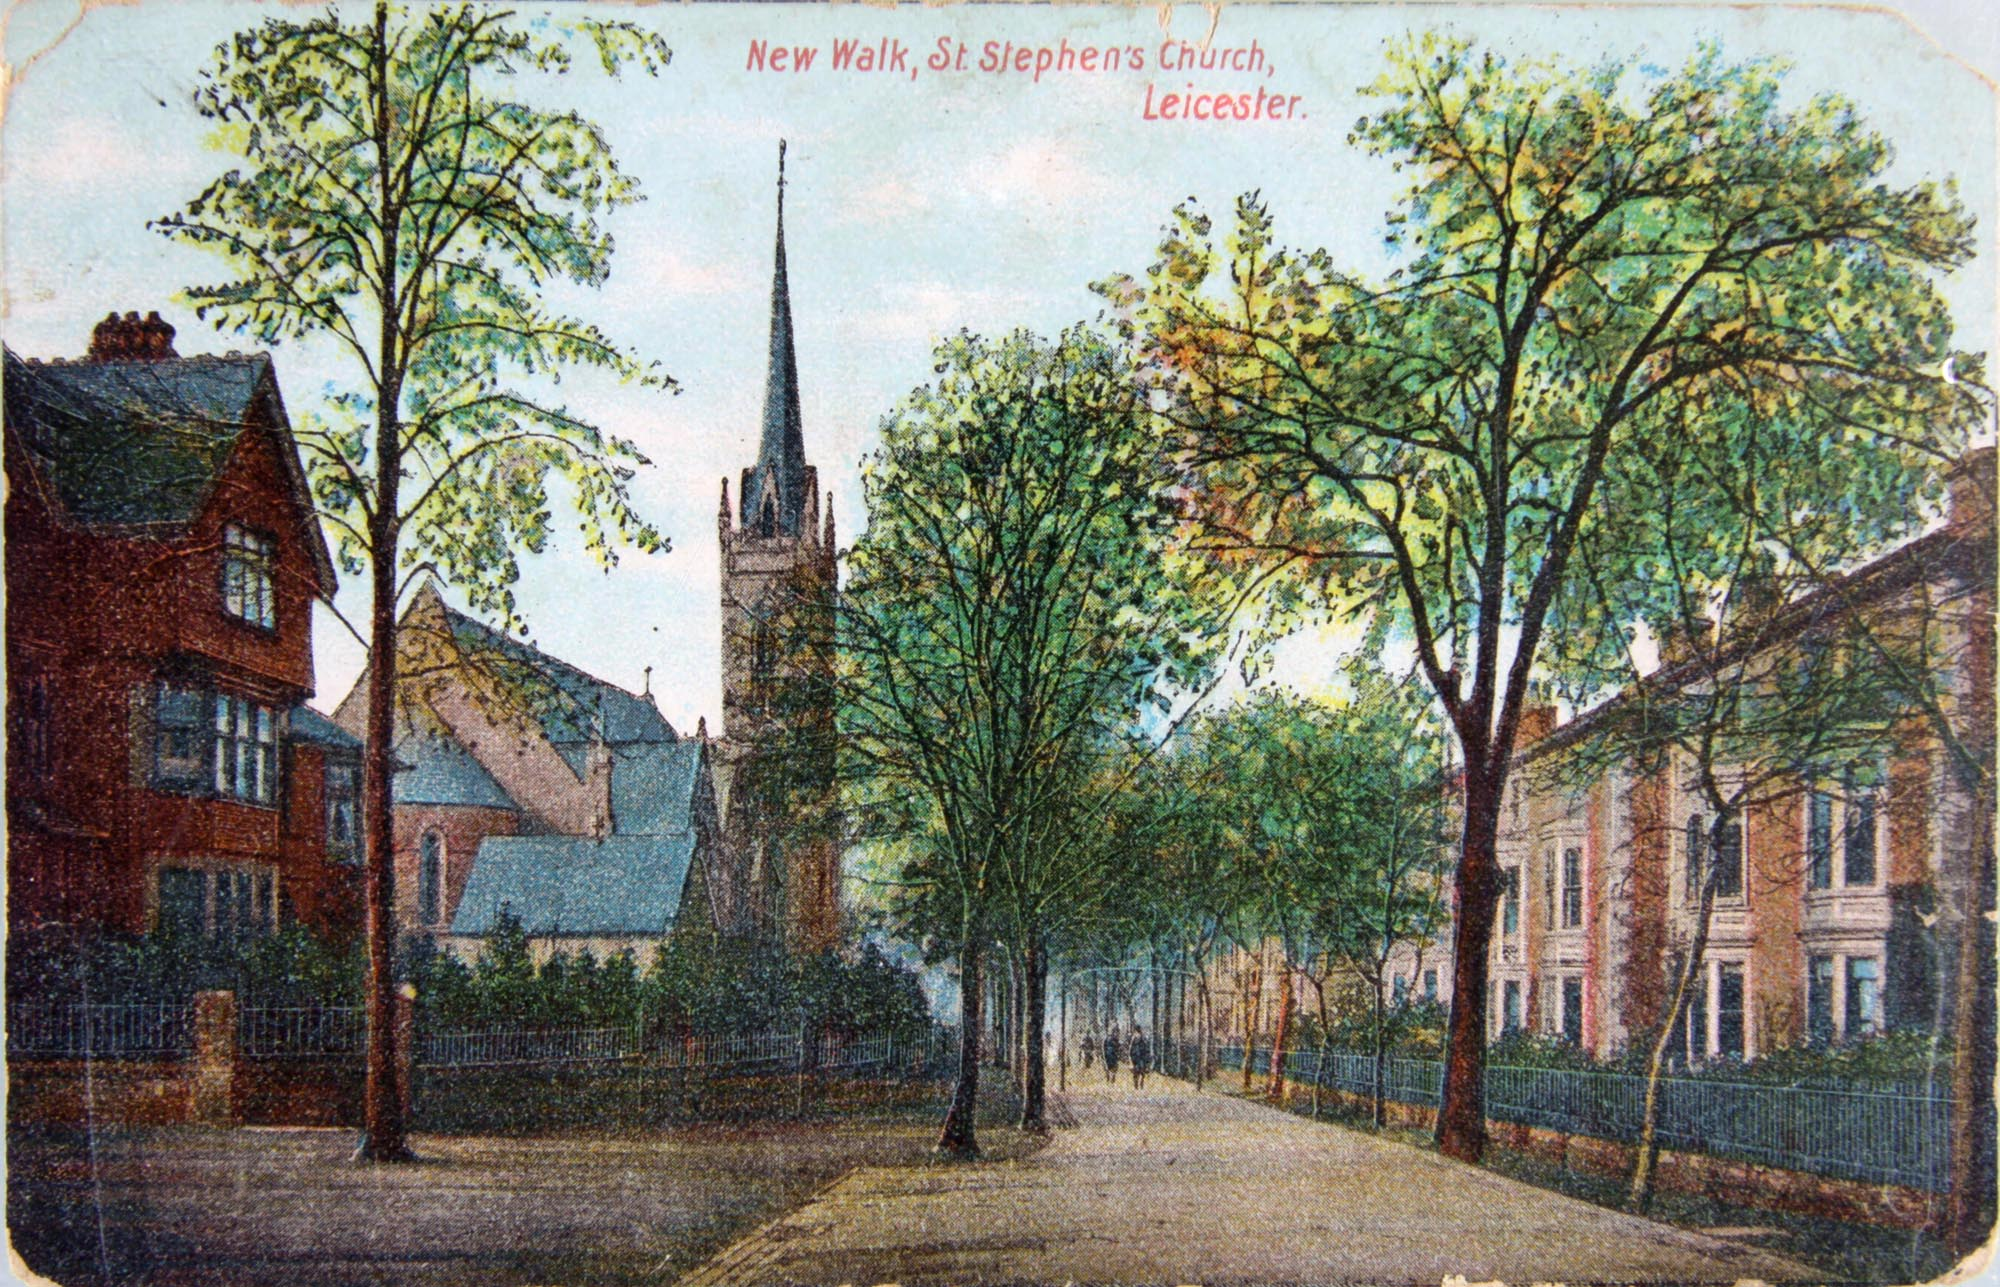 Postcard showing St Stephens Church, 1905 - Leicestershire Record Office